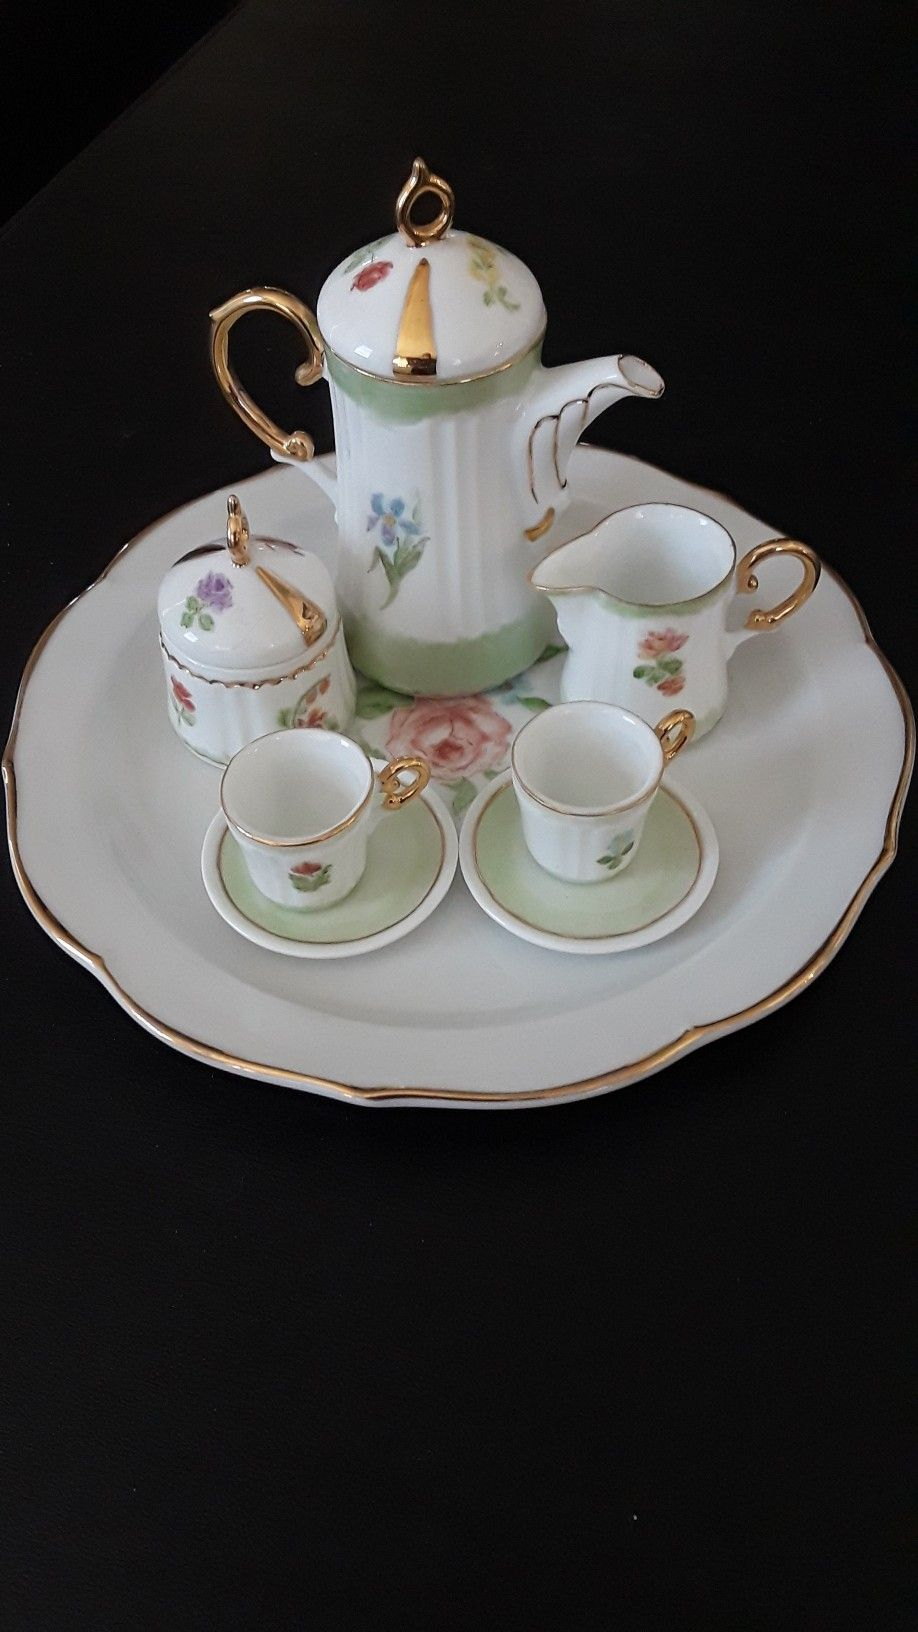 Pin By Carol Munro On Childrens Tea Sets With Images Mini Tea Set Childrens Tea Sets